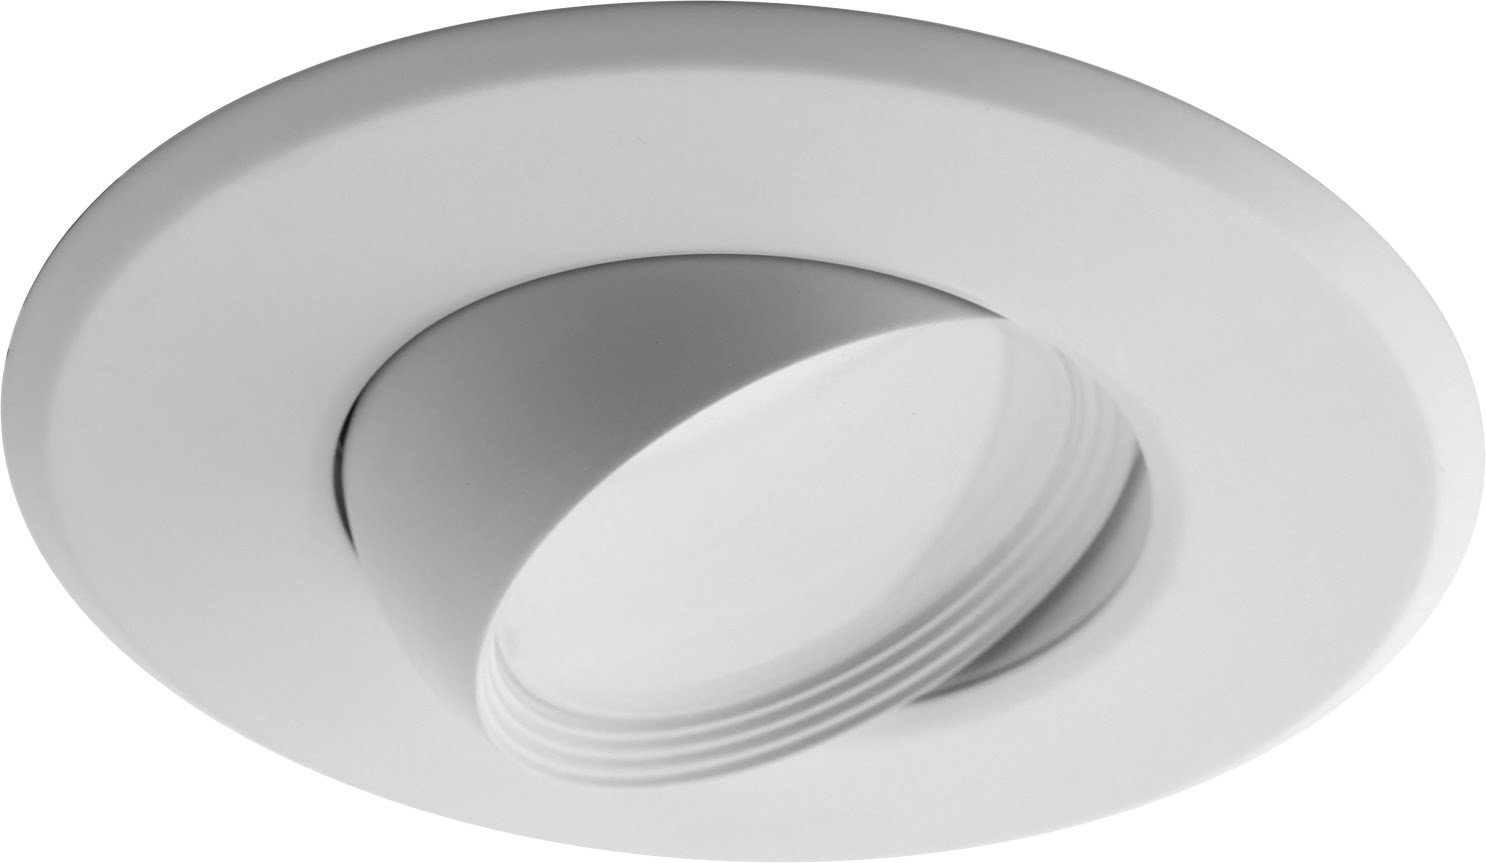 NICOR Lighting 5/6-Inch Dimmable 3000K Adjustable Eyeball LED Recessed Retrofit Downlight, White (DEB56-20-120-3K-WH)